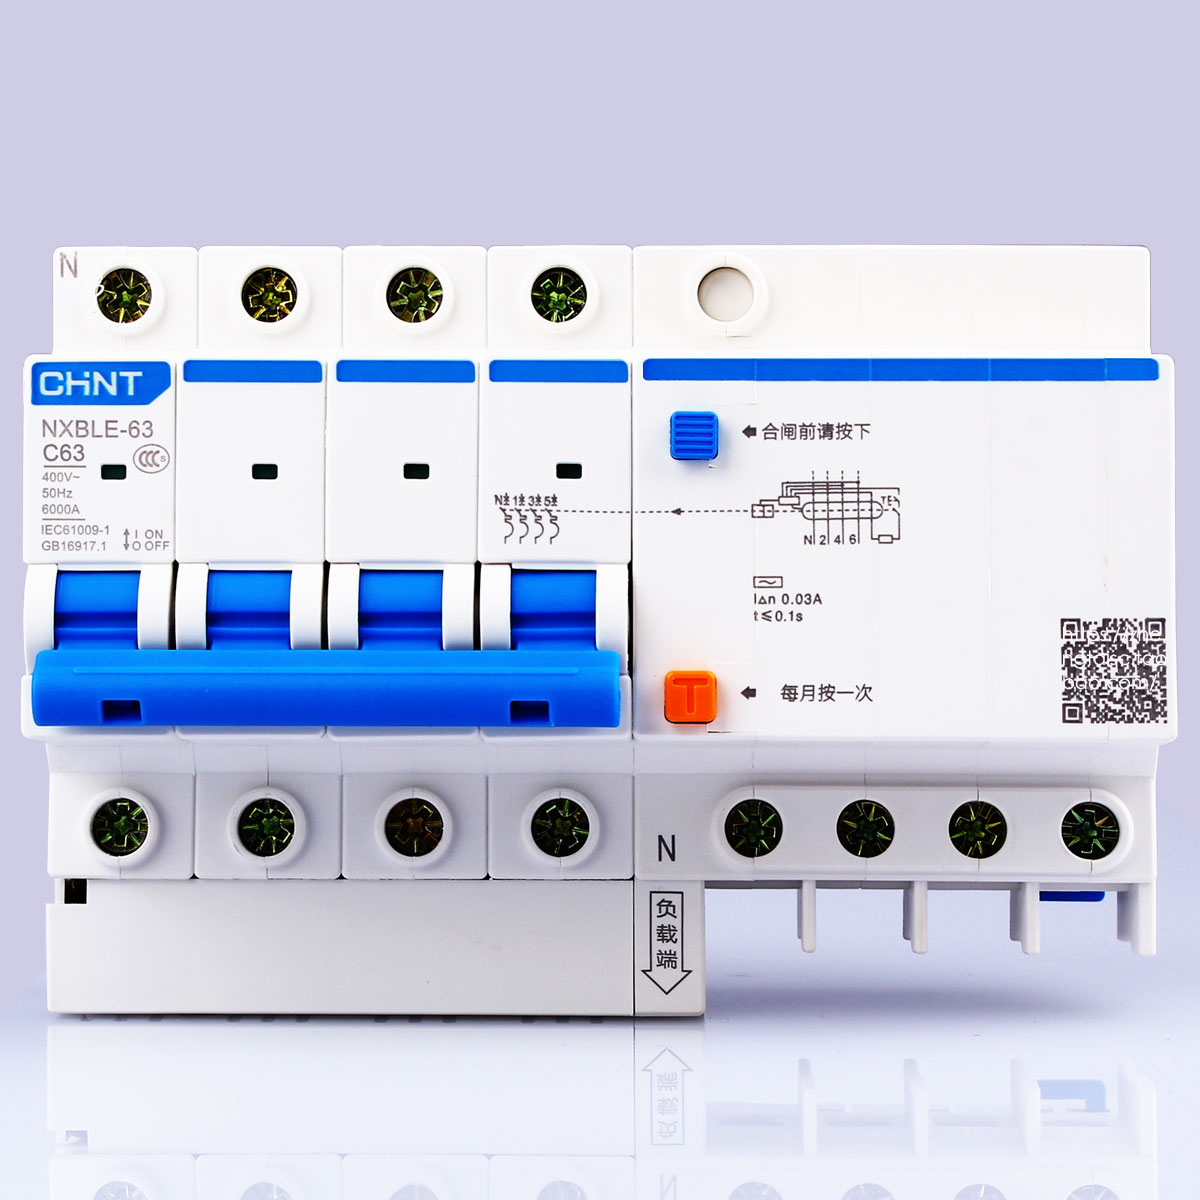 CHNT CHINT NXBLE-63 4P 6A 10A 16A 20A 25A 32A 40A 50A 63A Small Earth Leakage Circuit Breakers With Leakage Protection RCBO